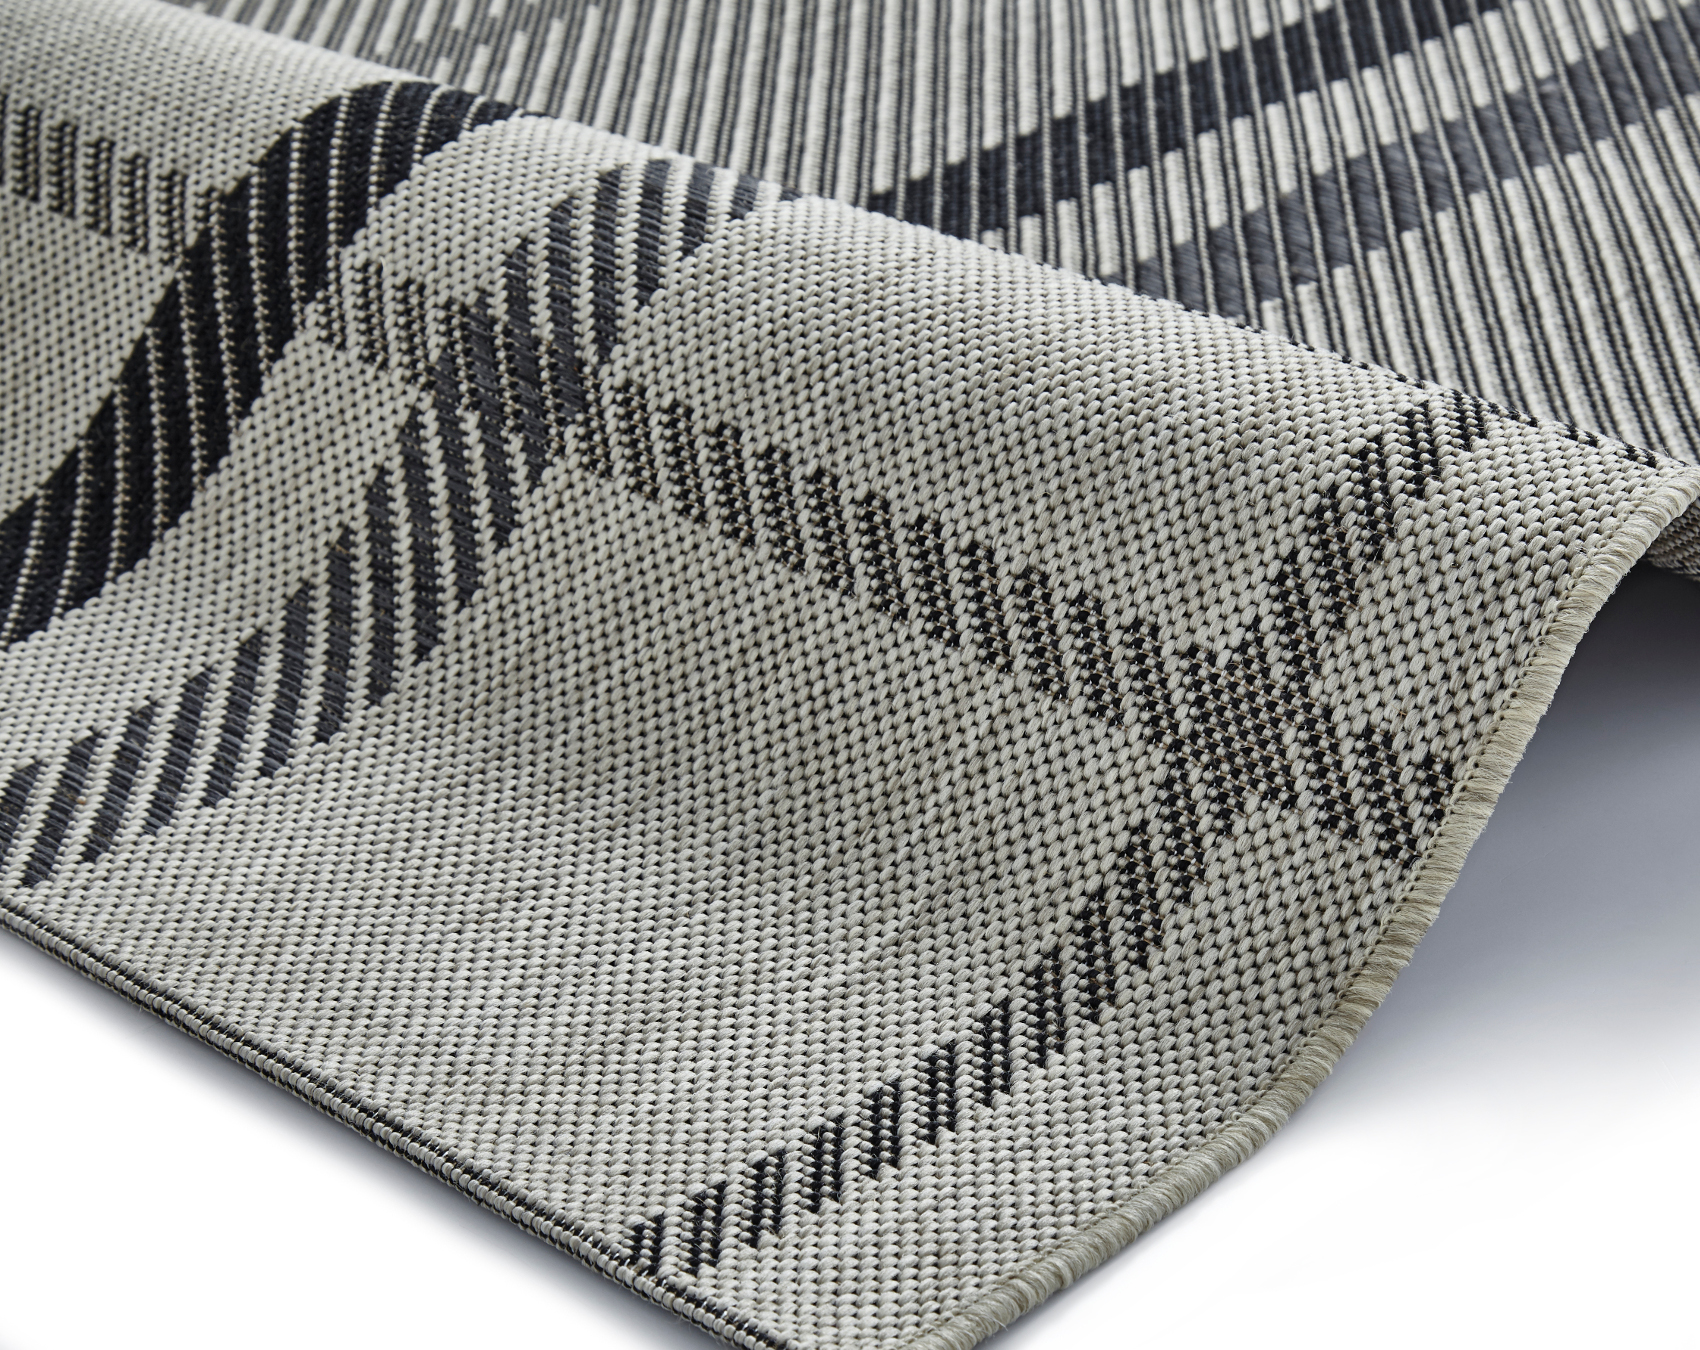 Breeze Tartan Check Rug Flat Weave Polypropylene Durable